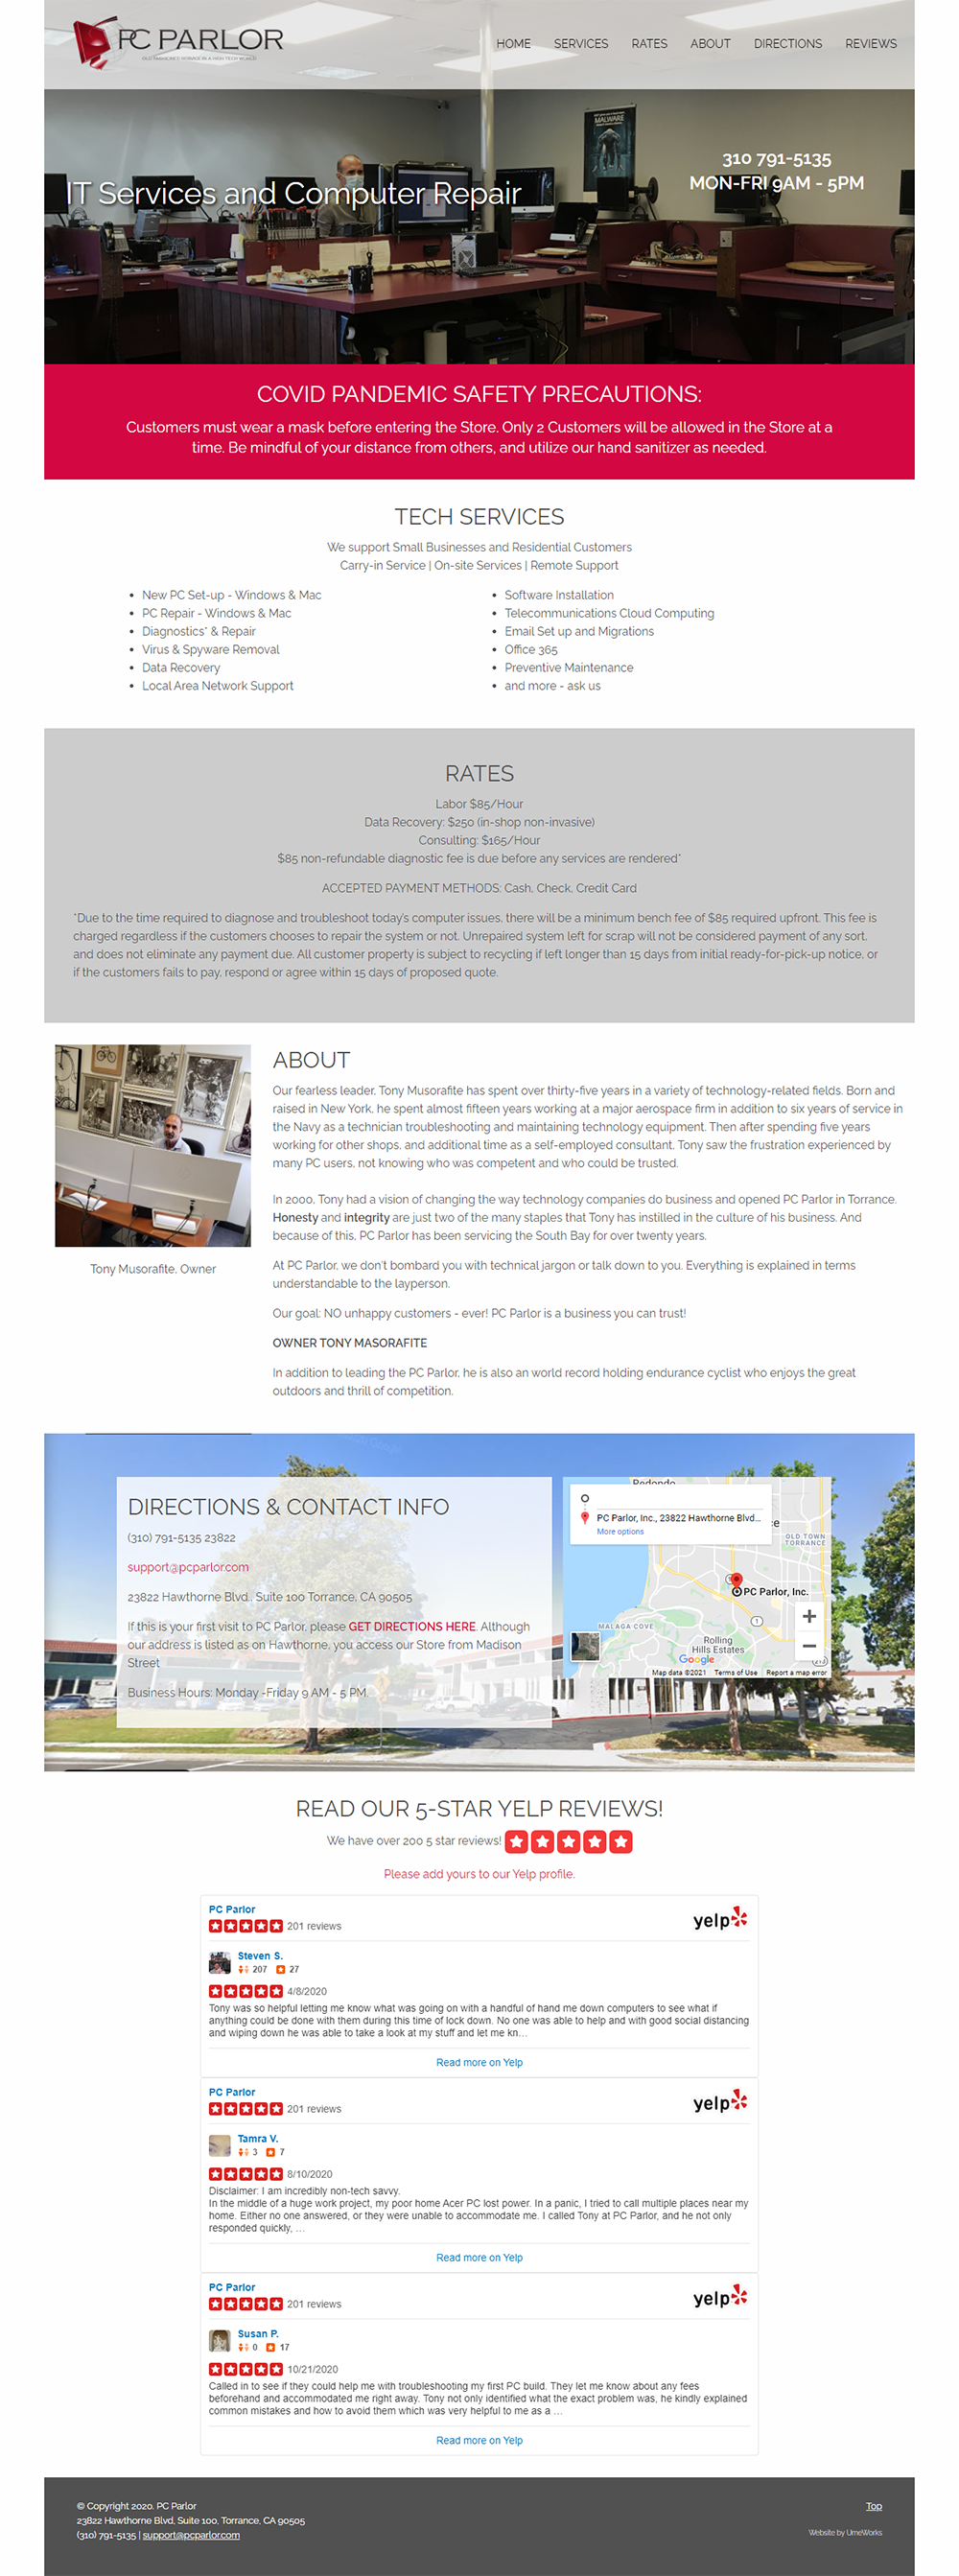 website redesign for PC Parlor in Torrance